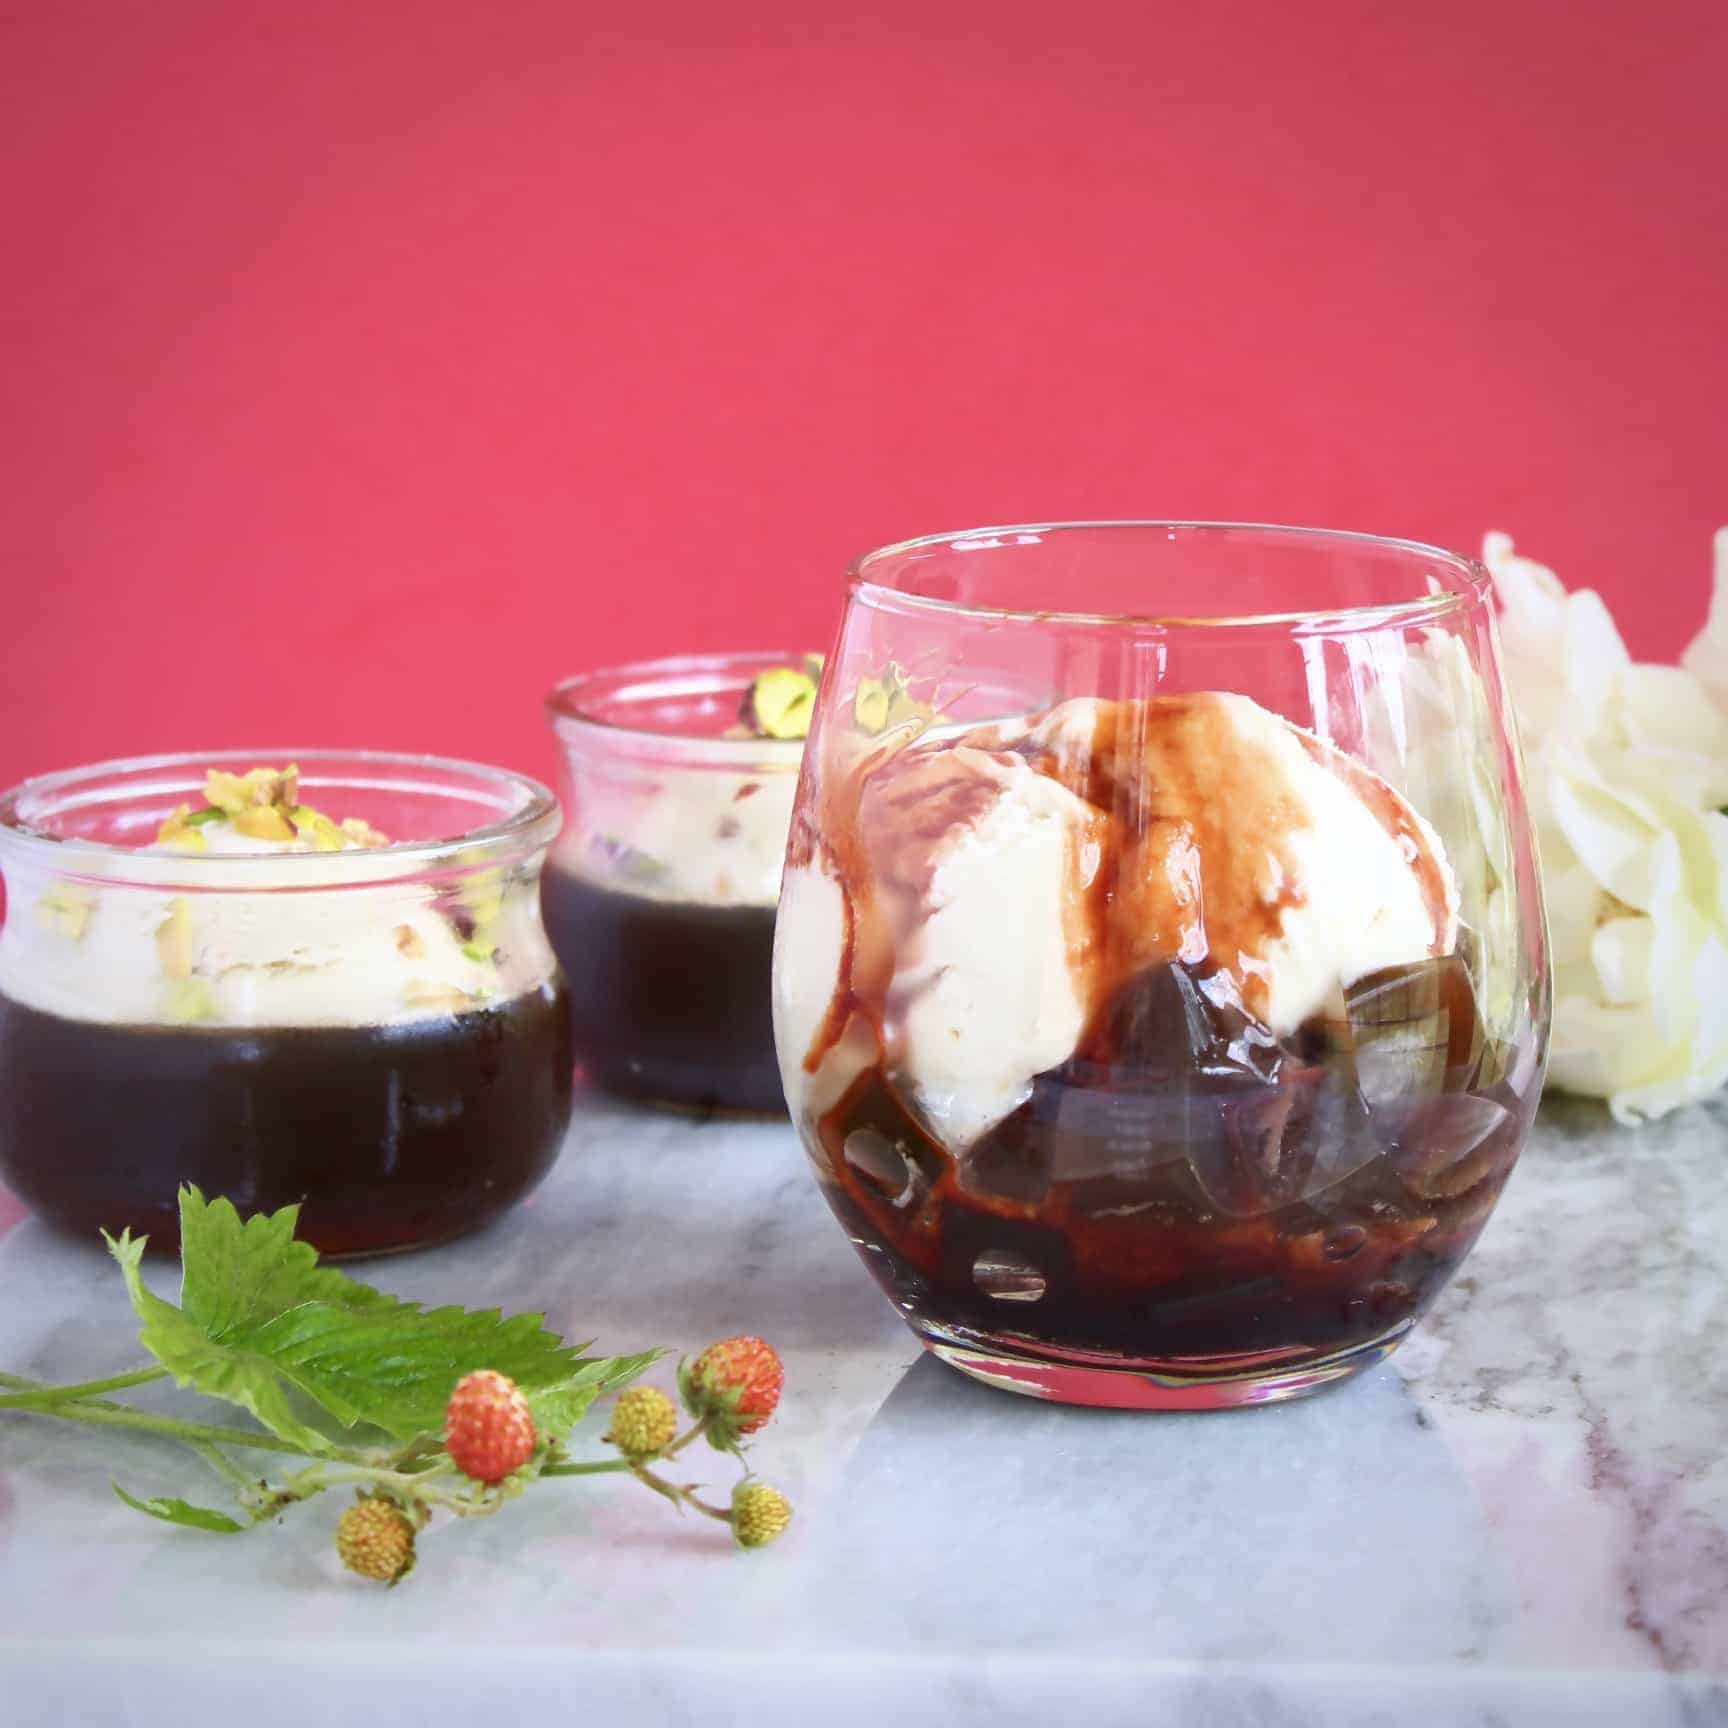 Coffee Jelly Ice Cream Sundae (Vegan + GF)